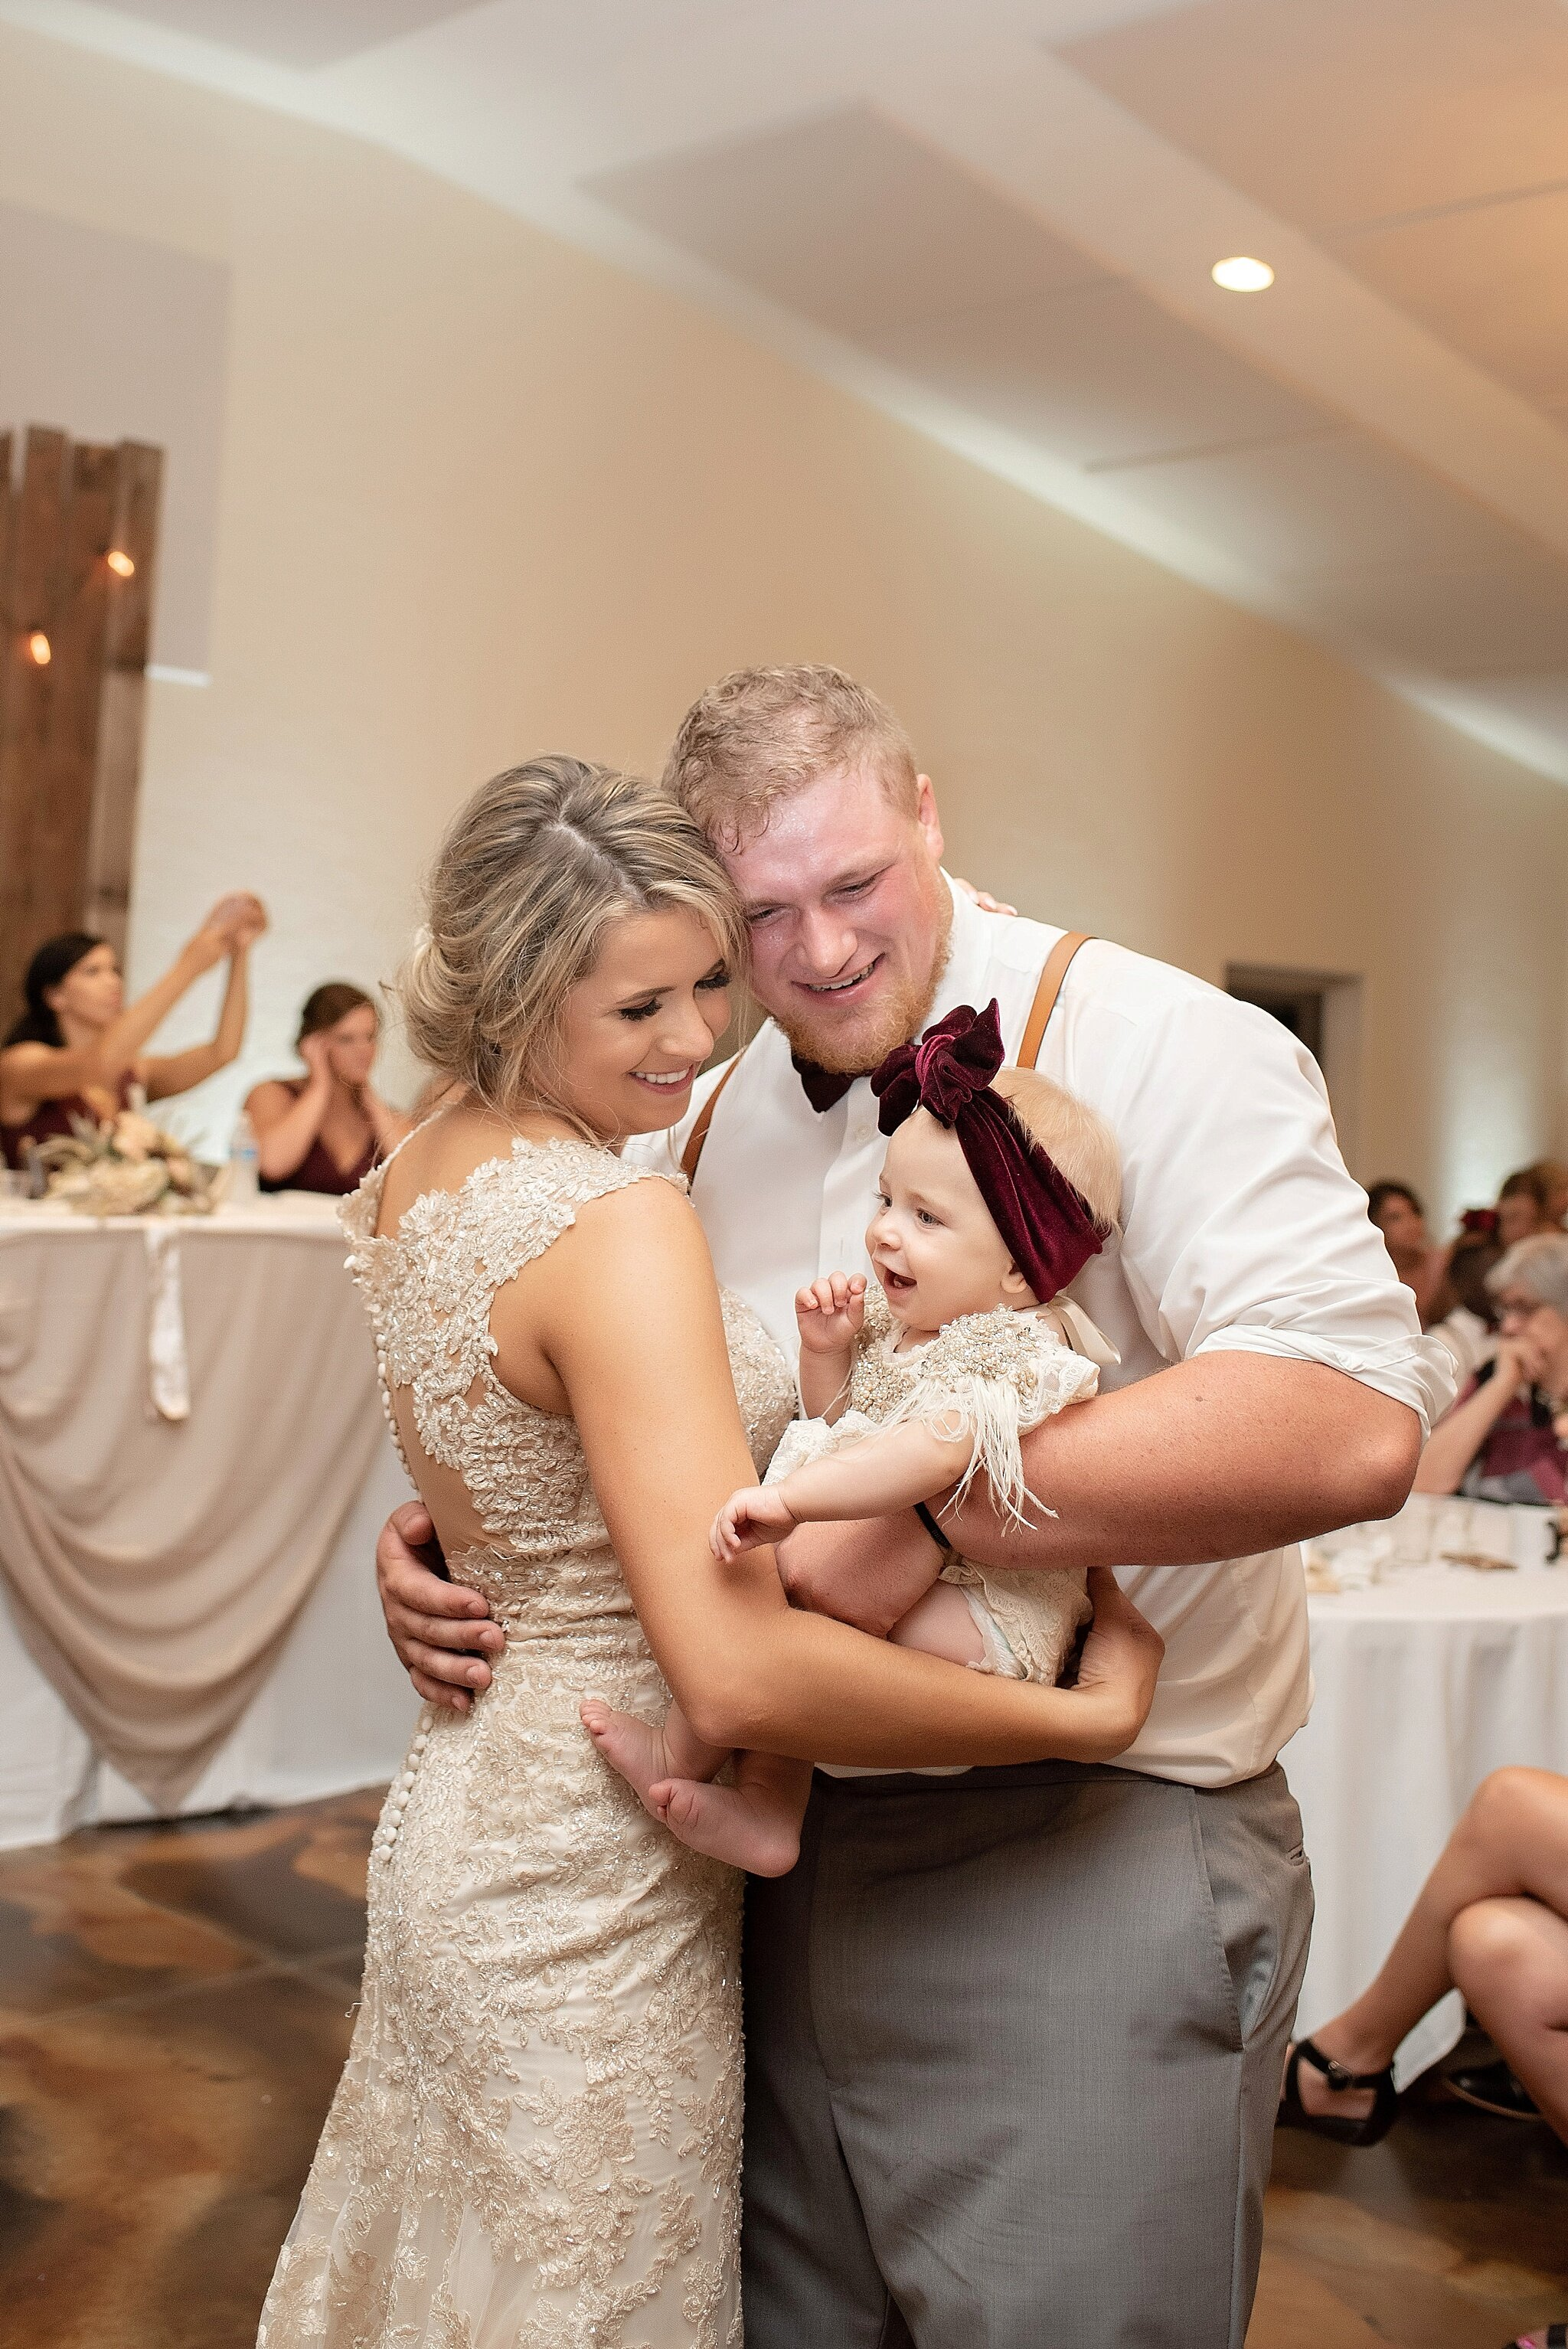 family of three at wedding dance